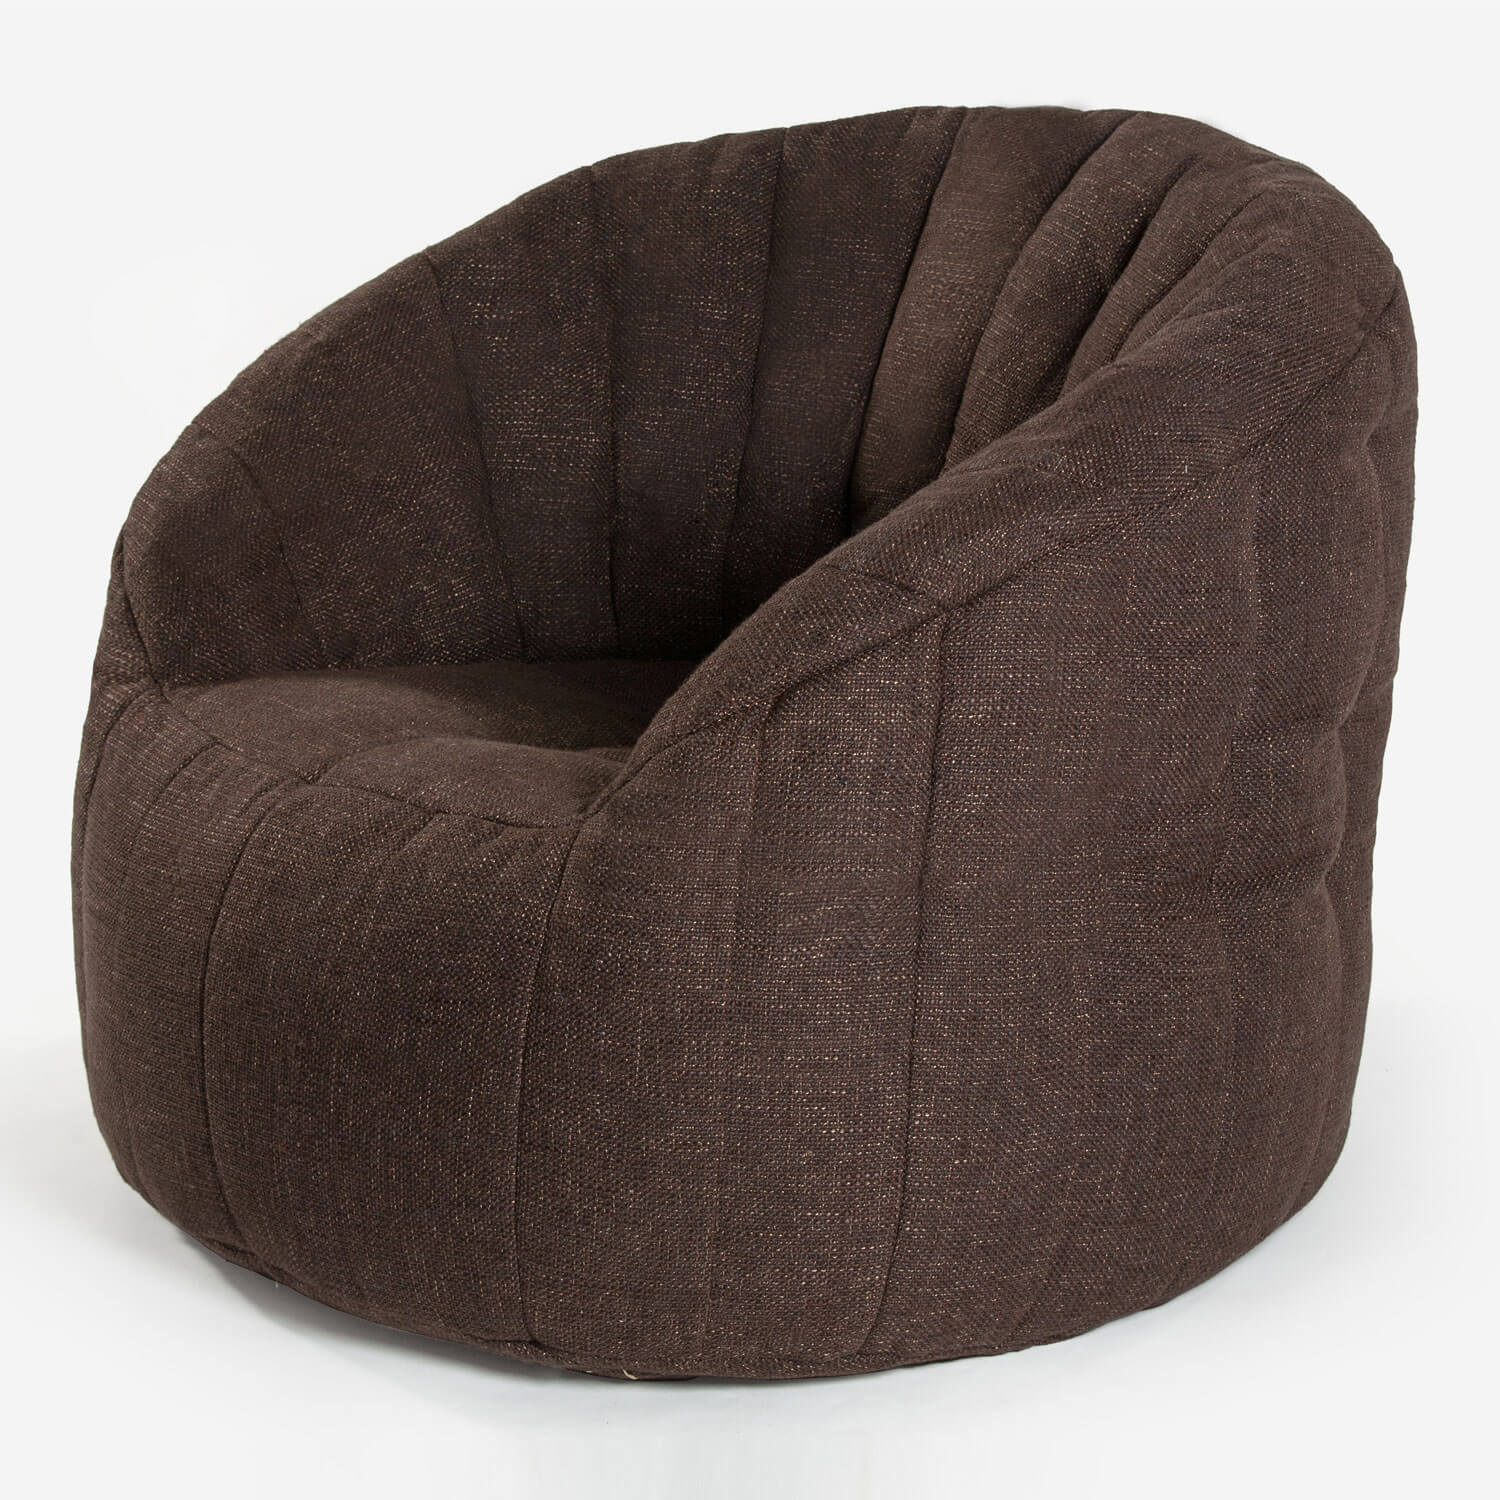 Interior Bean Bag Chair Butterfly Sofa Hot Chocolate